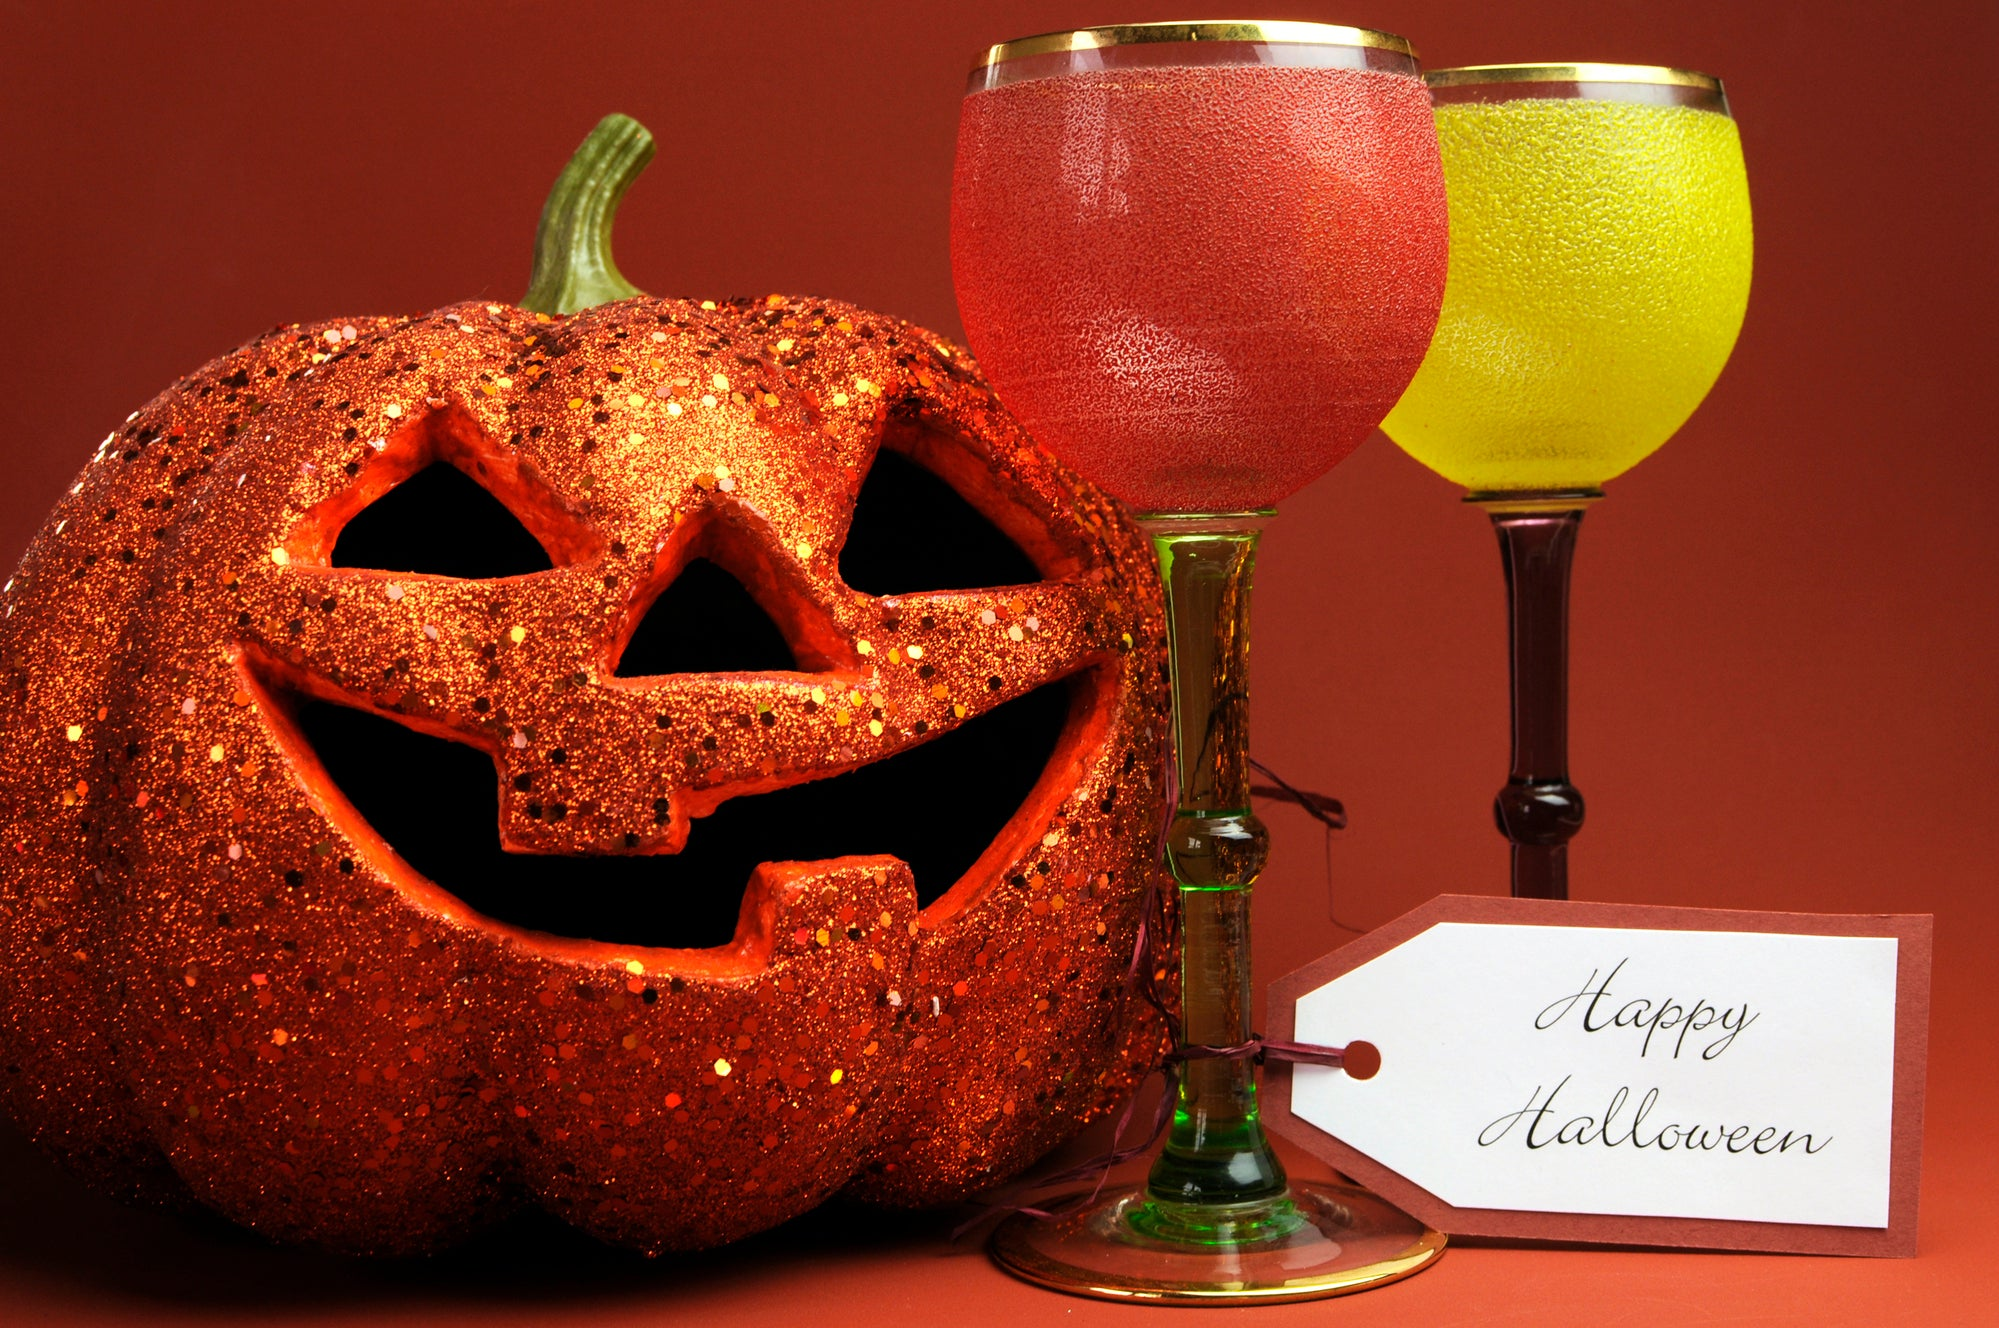 Spooky yet Yummy Halloween drinks to serve at your Halloween Party